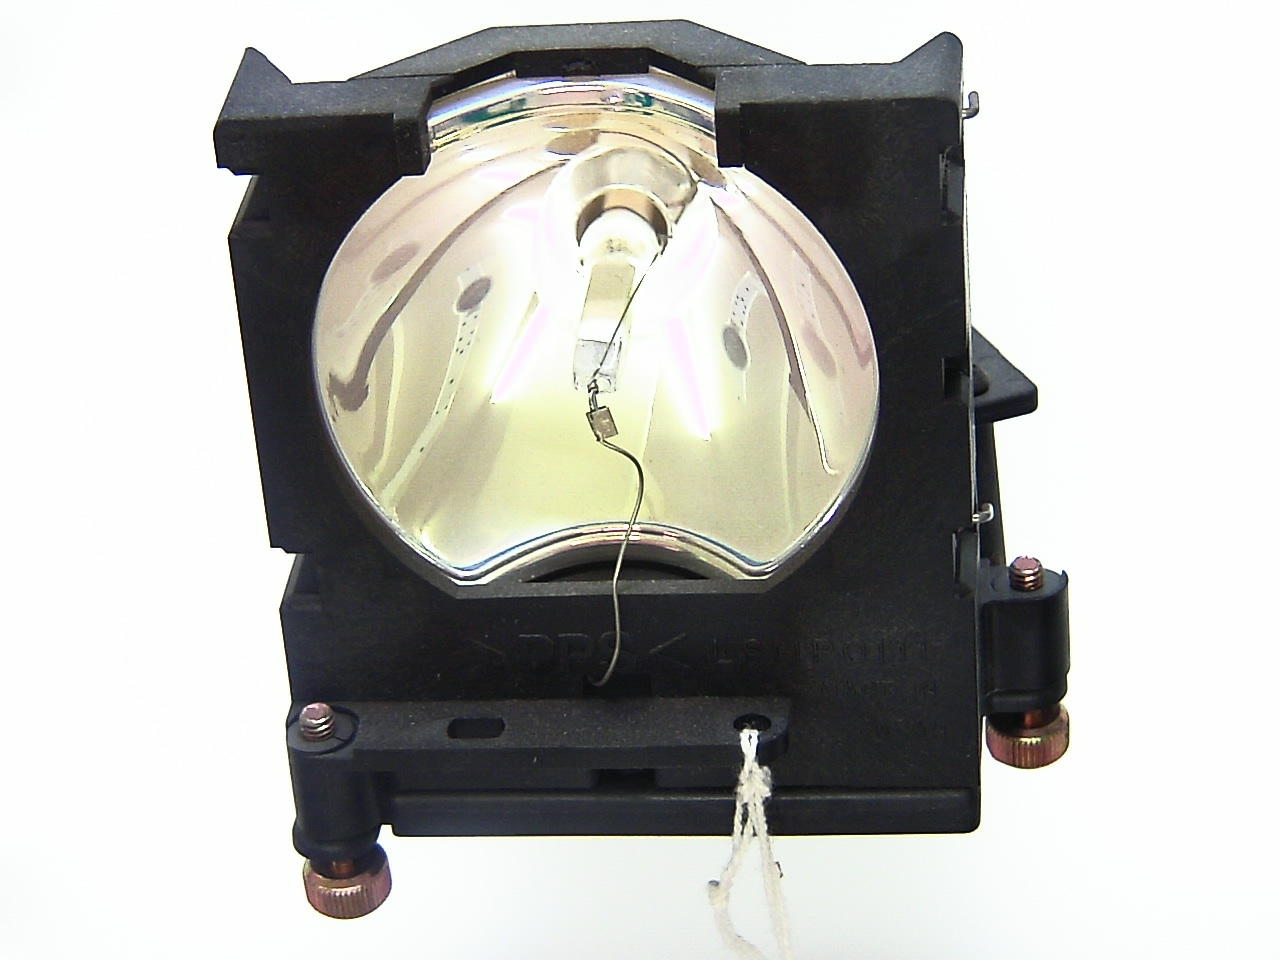 NVIEW NVIEW L605 Genuine Original Projector Lamp